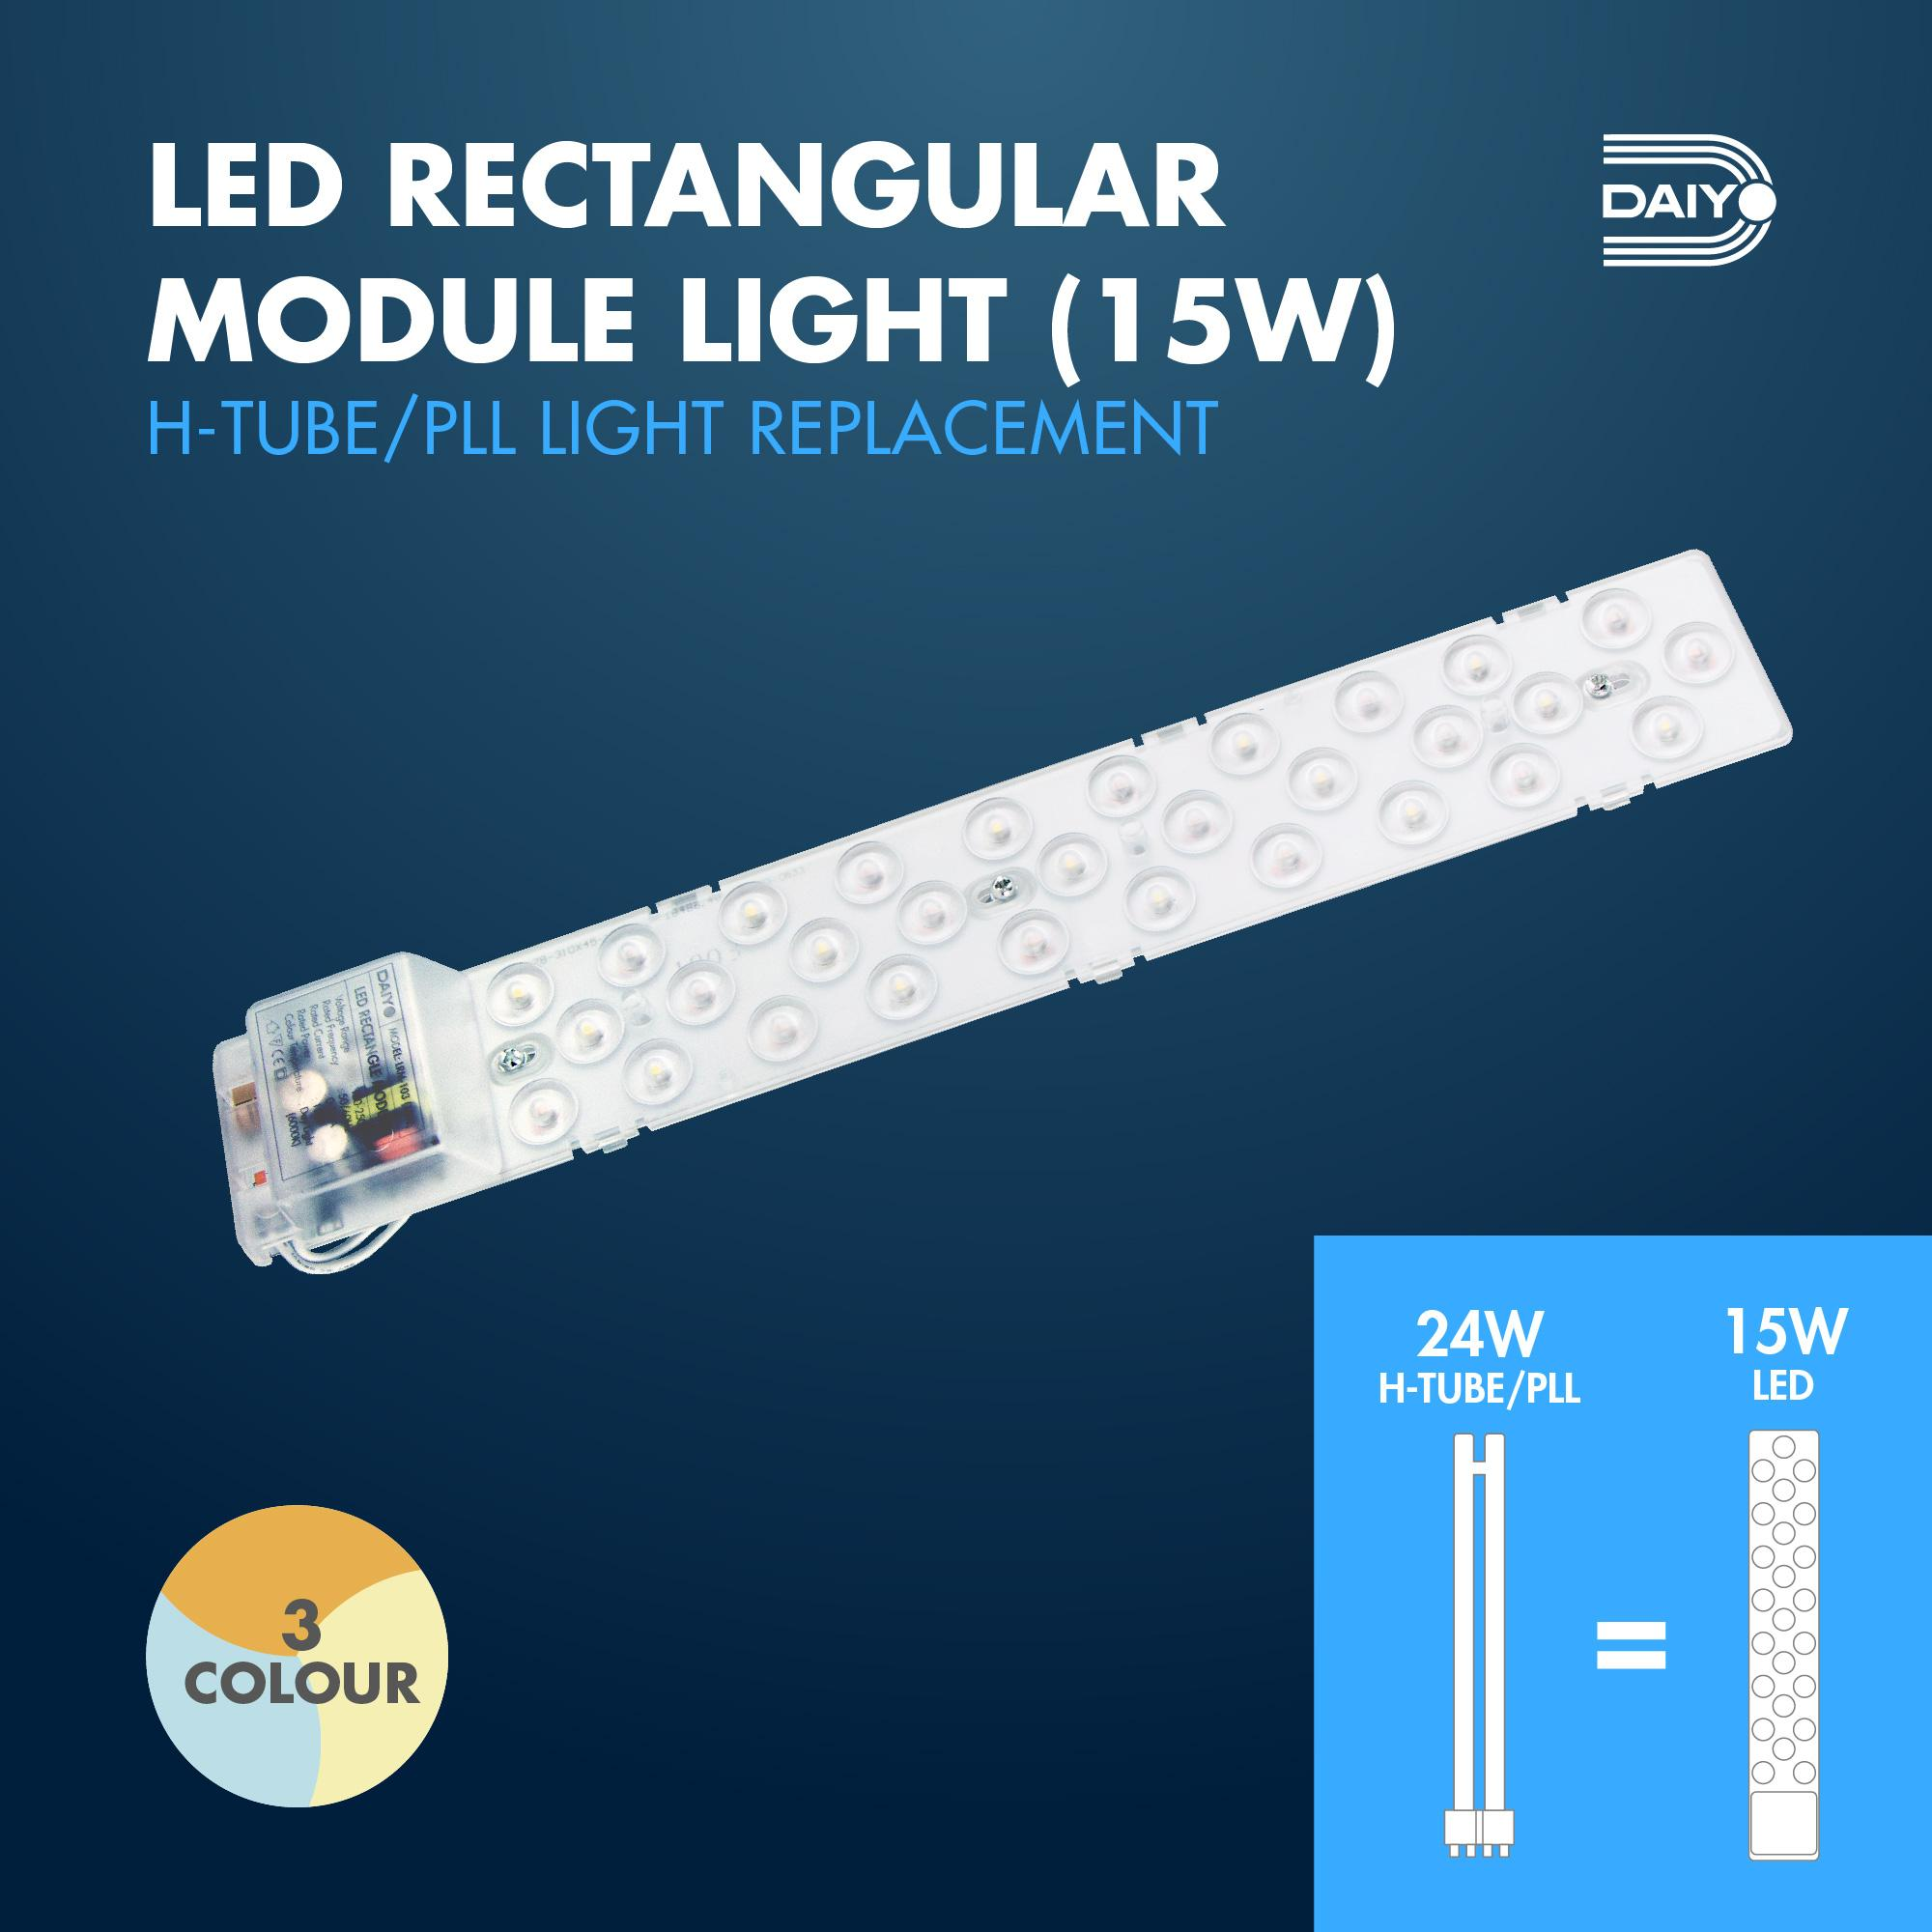 15W LED Rectangle Module Light (3 Colours)